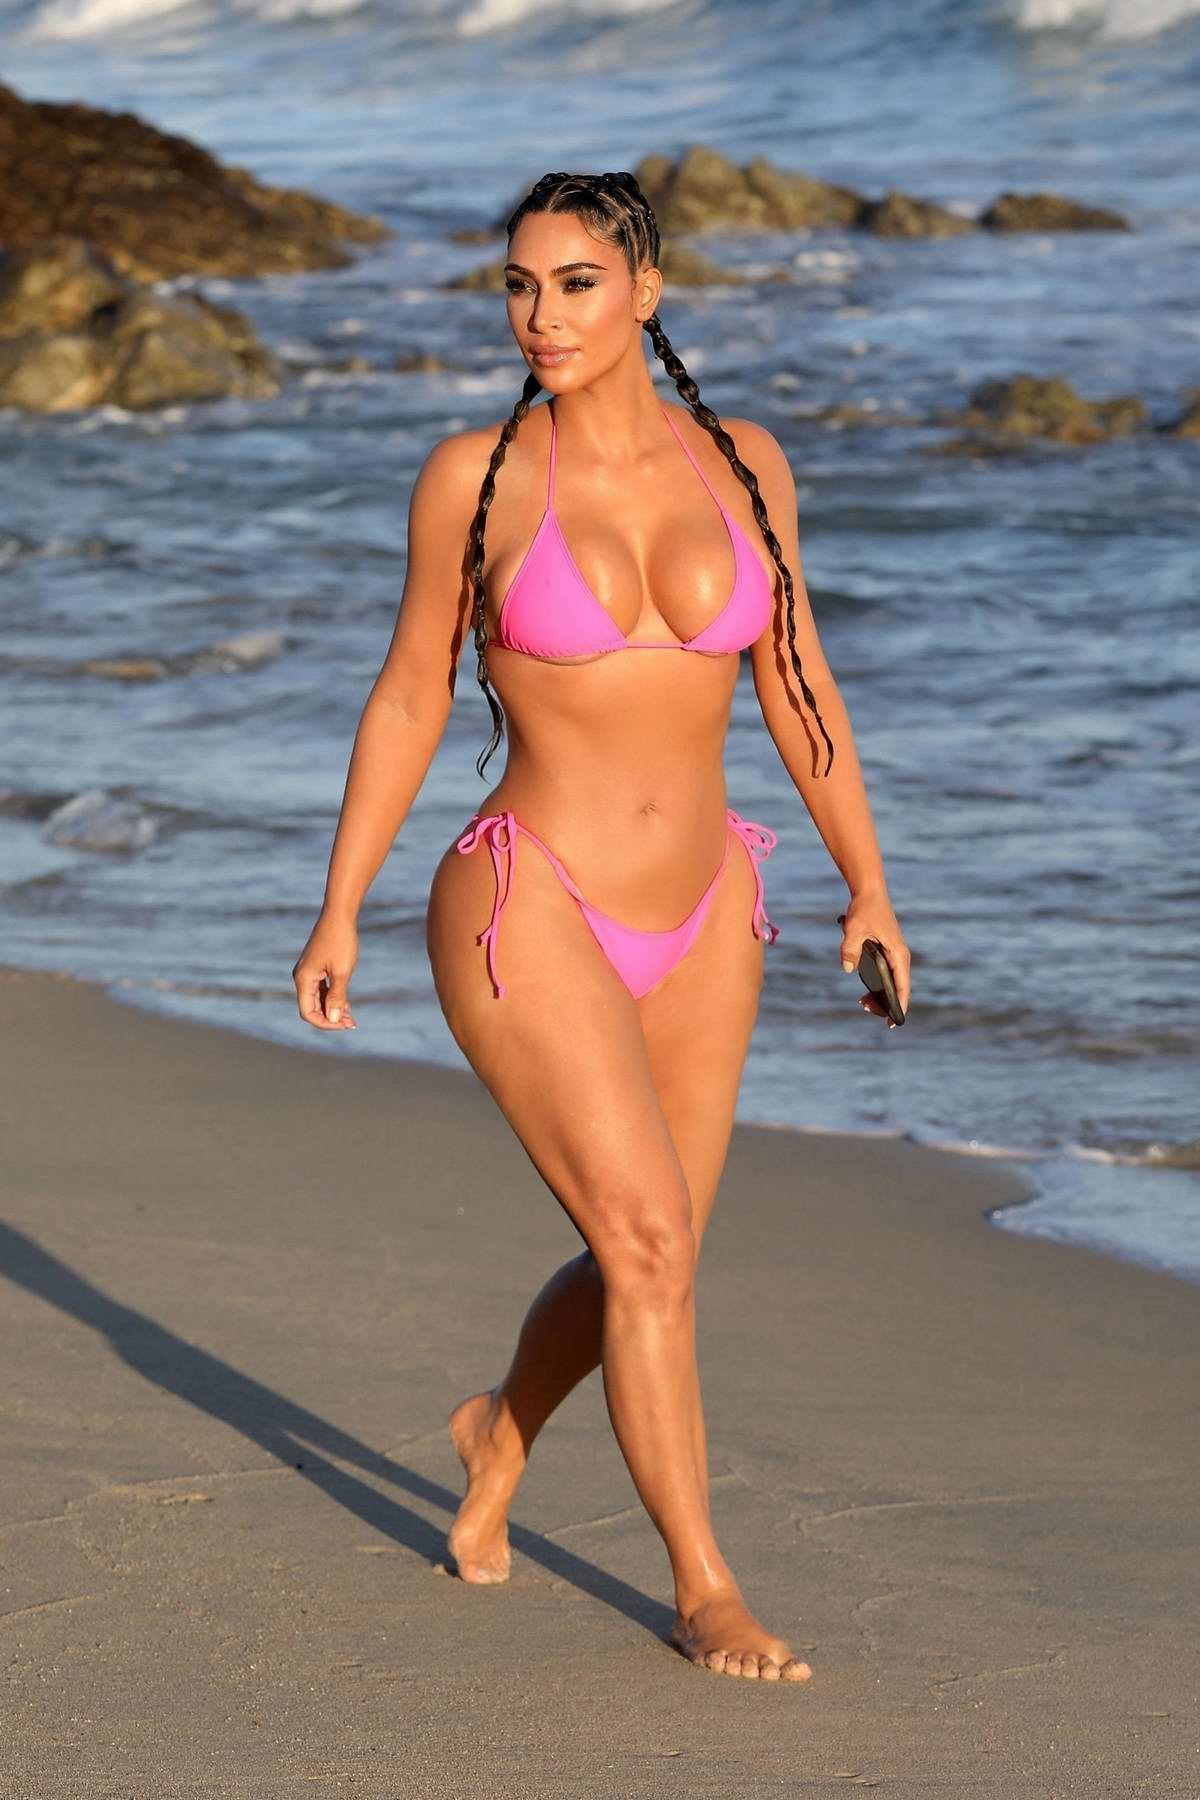 Kim Kardashian puts on a stunning display in a hot pink bikini during a KKW beauty photoshoot in Cabo San Lucas, Mexico